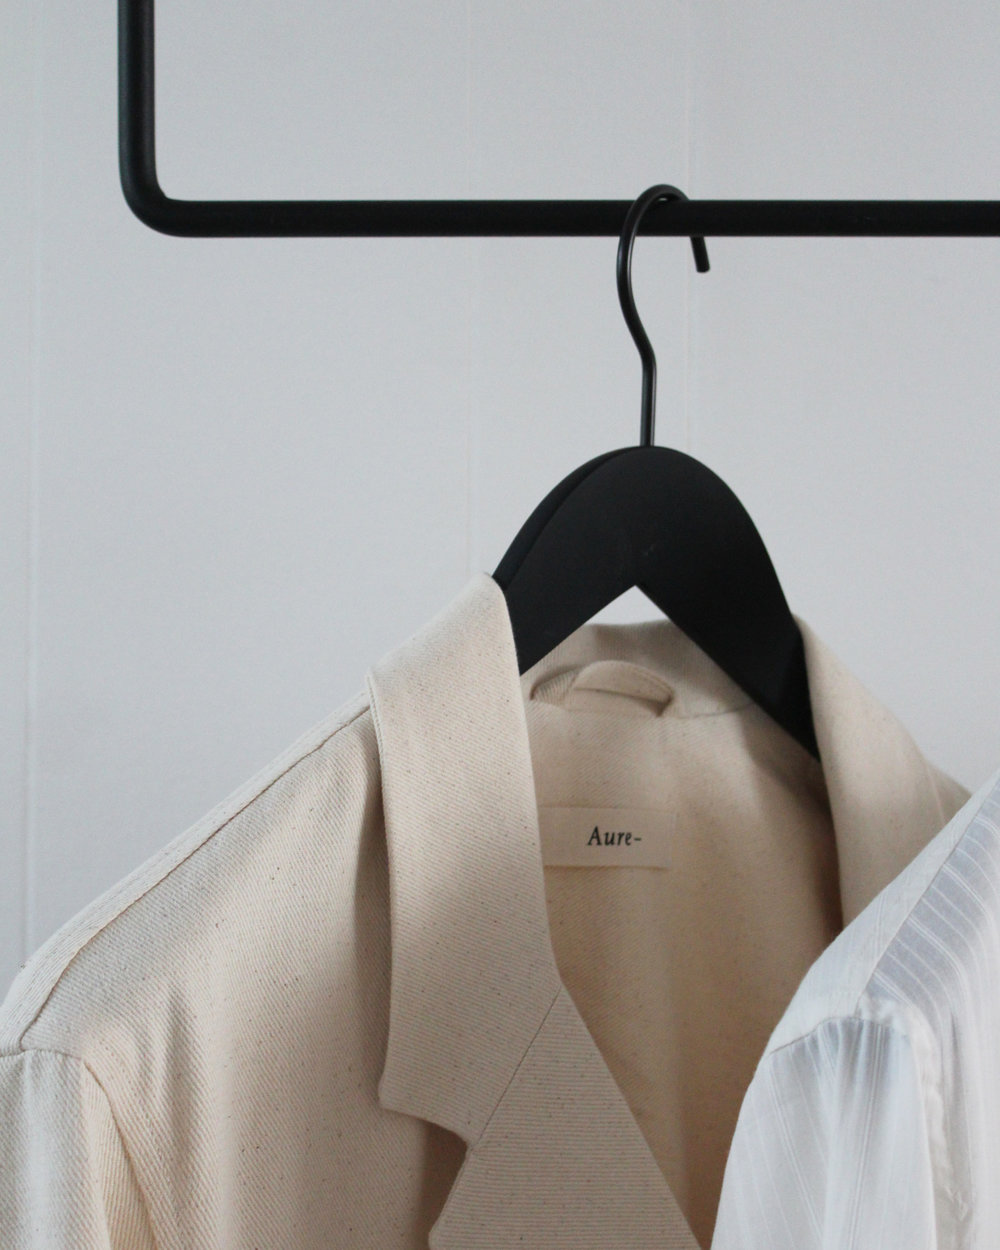 Painters jacket on clothing rack designed by Anneleena Leino.